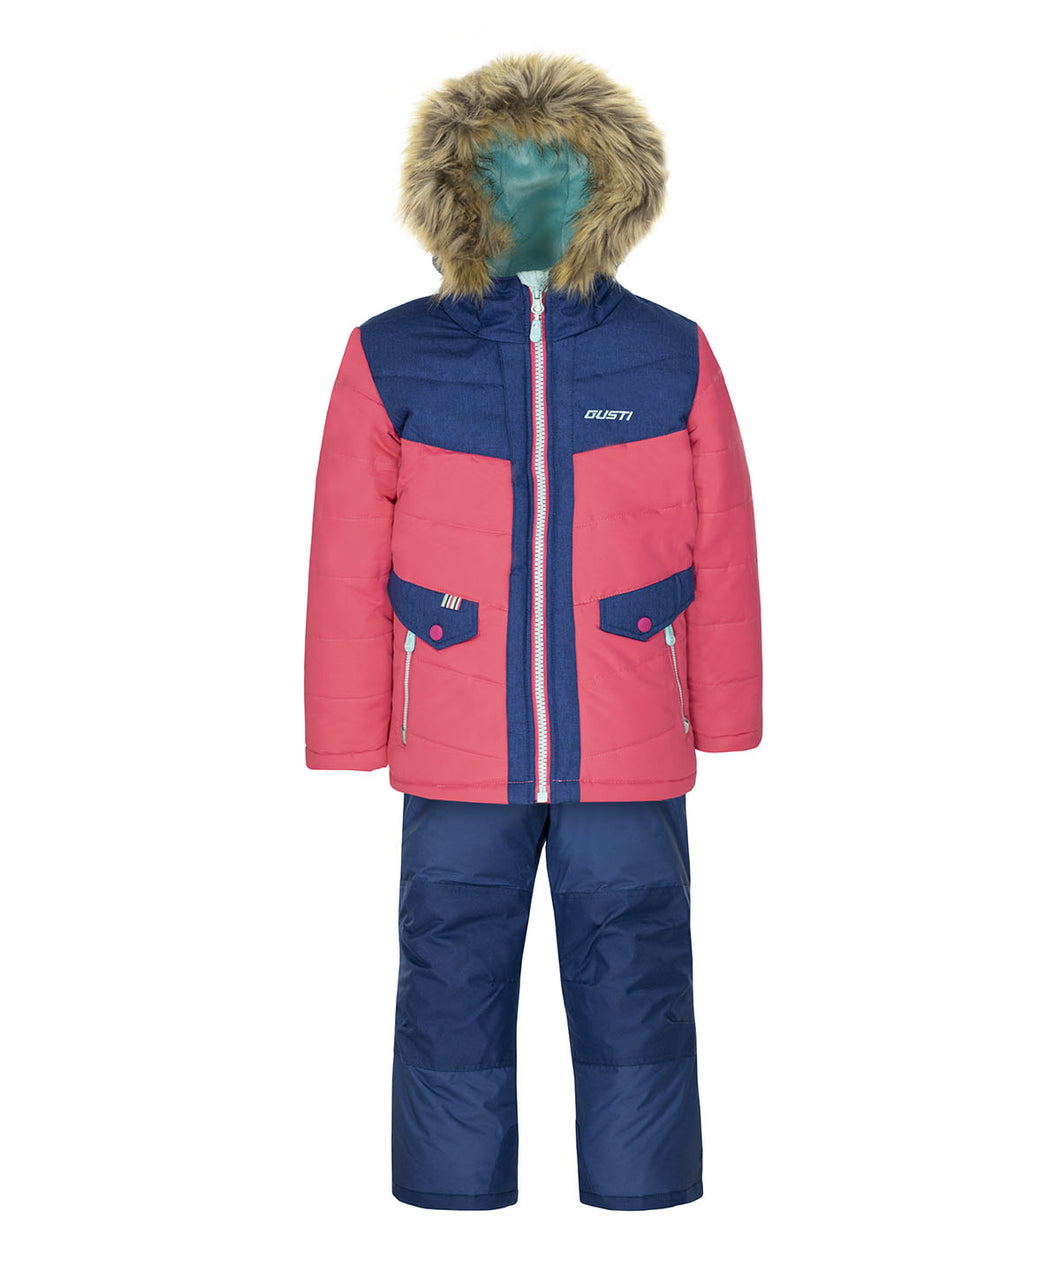 UVANIA - Estate Blue - Girls Jacket and Snow Pant Set